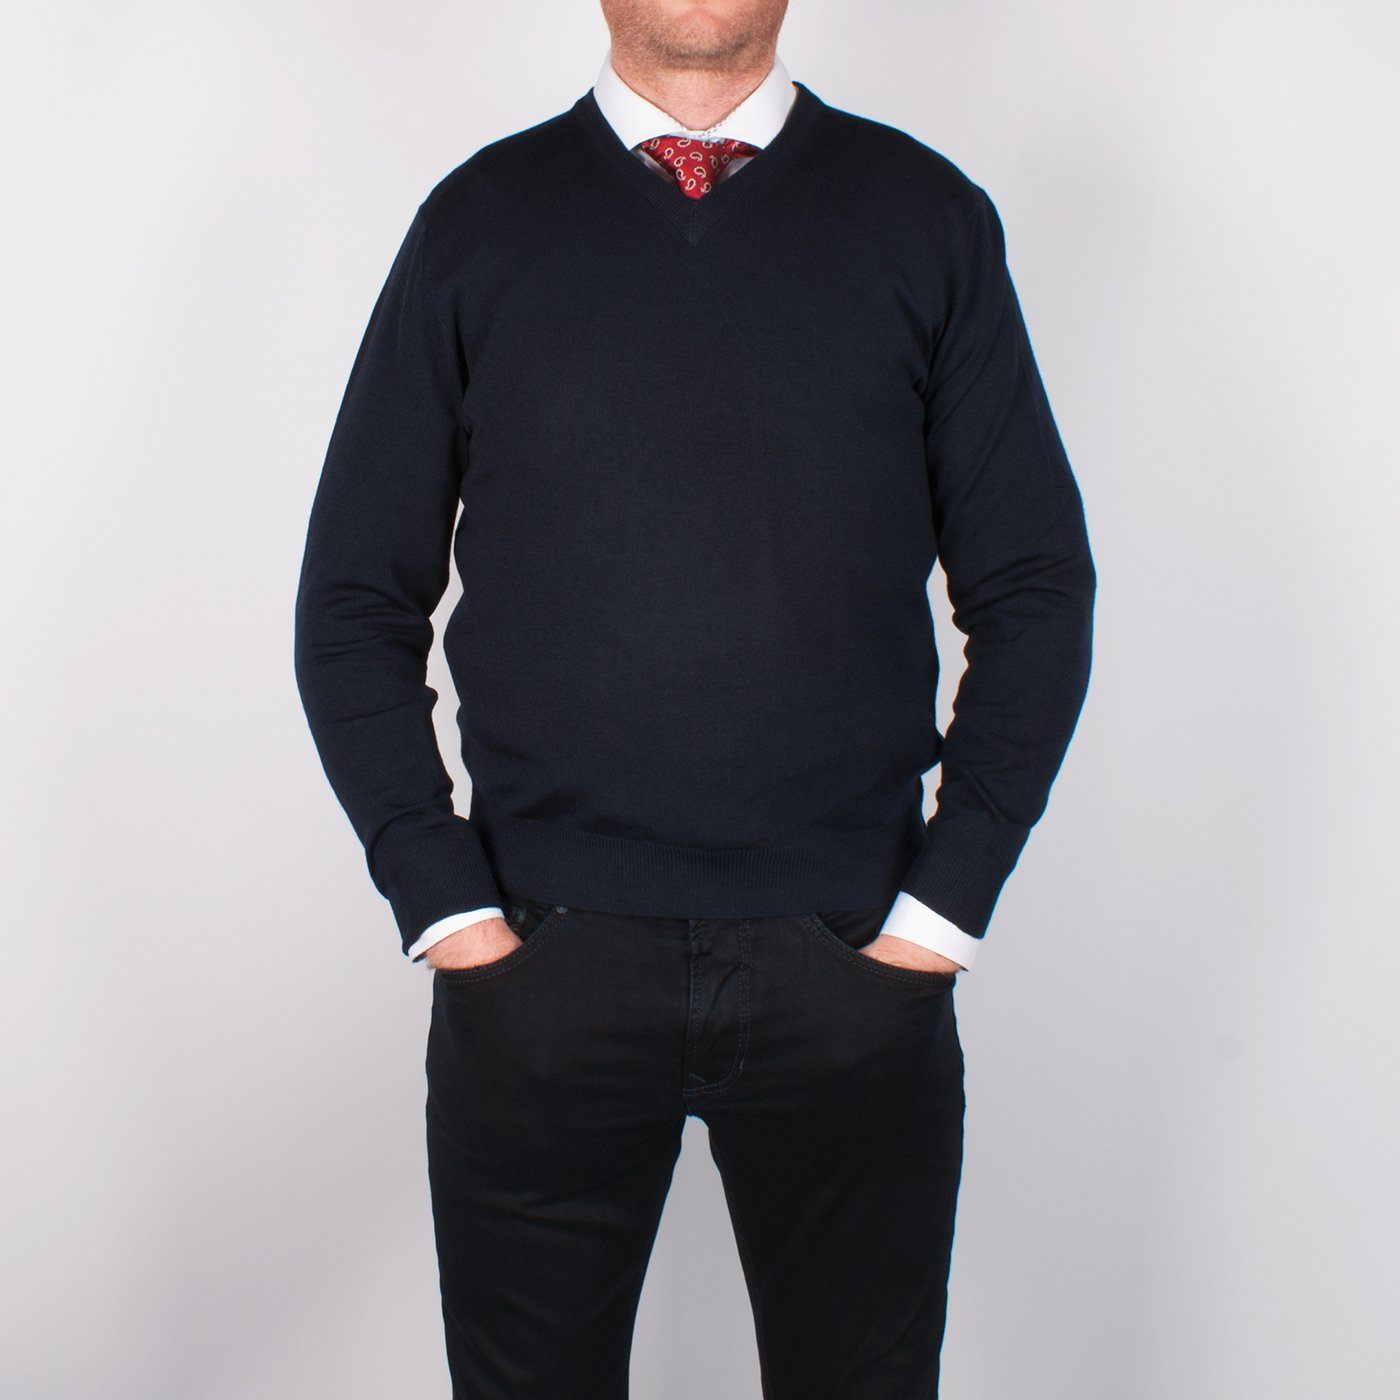 Navy Merino V-neck Sweater - Leonard Silver